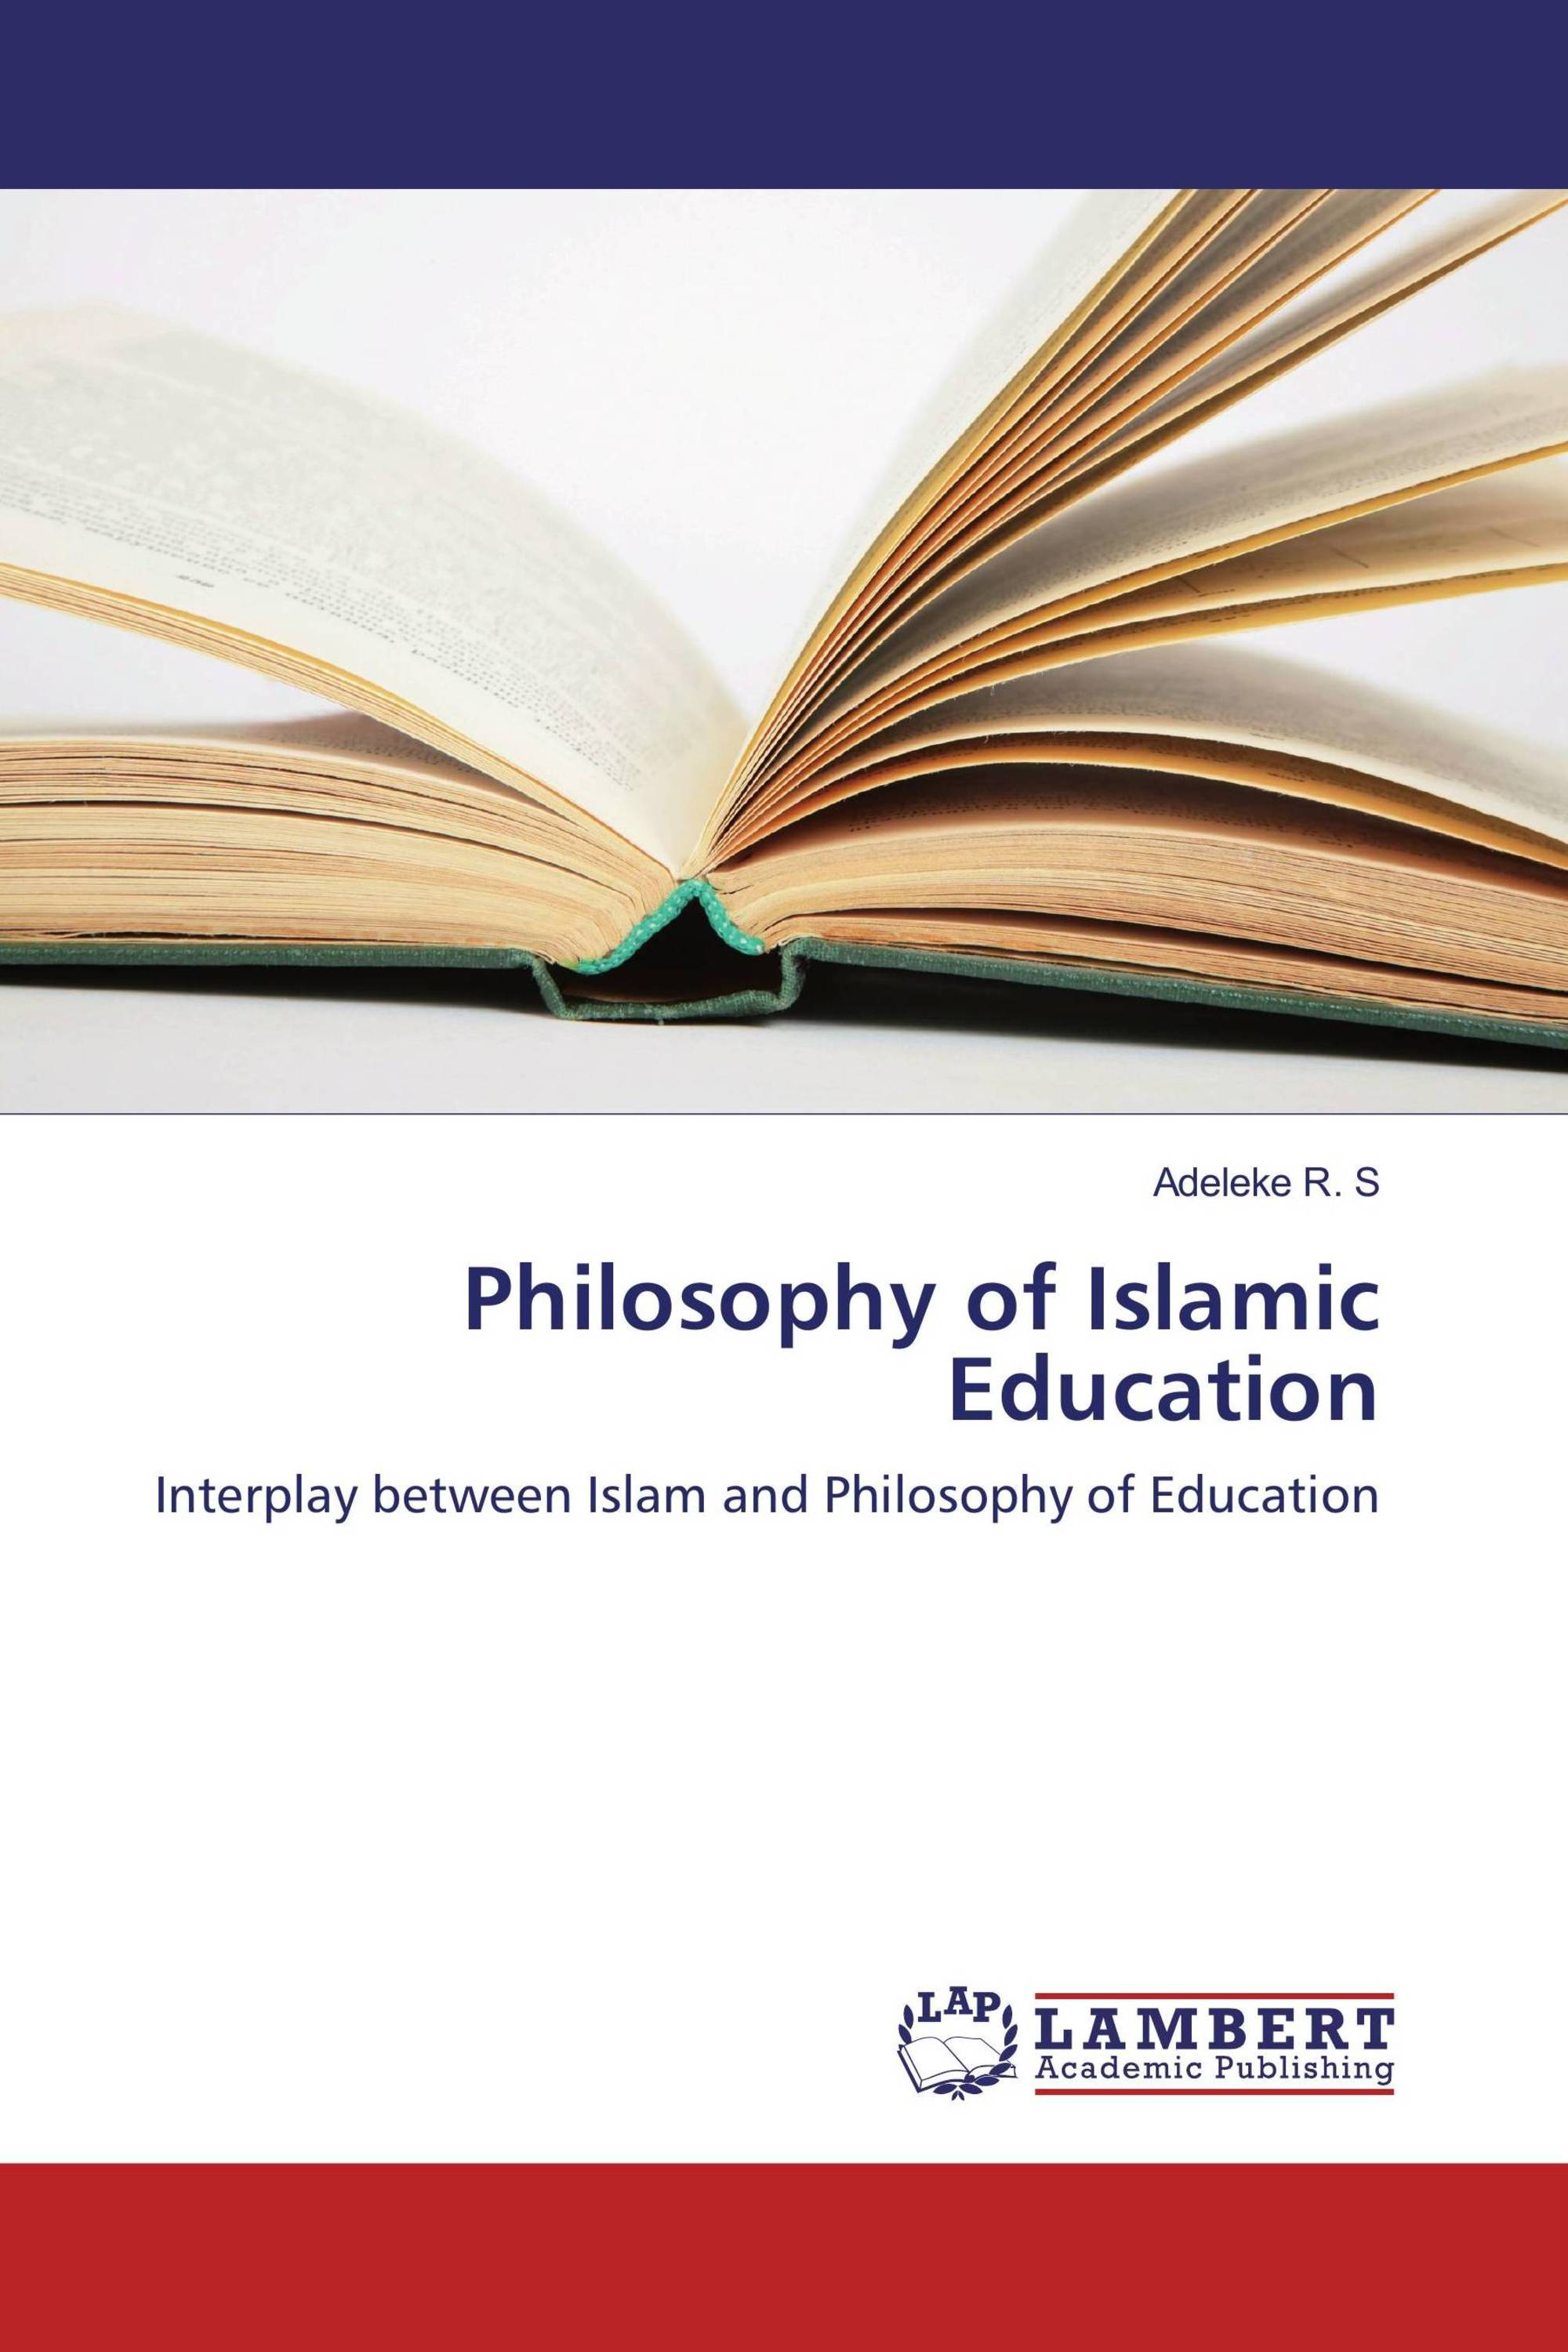 an analysis of the role of education in shaping society What is social foundations of education social foundations of education draws upon several disciplines and fields to examine education, namely history, philosophy, comparative/ international education, cultural studies, sociology, and political science.